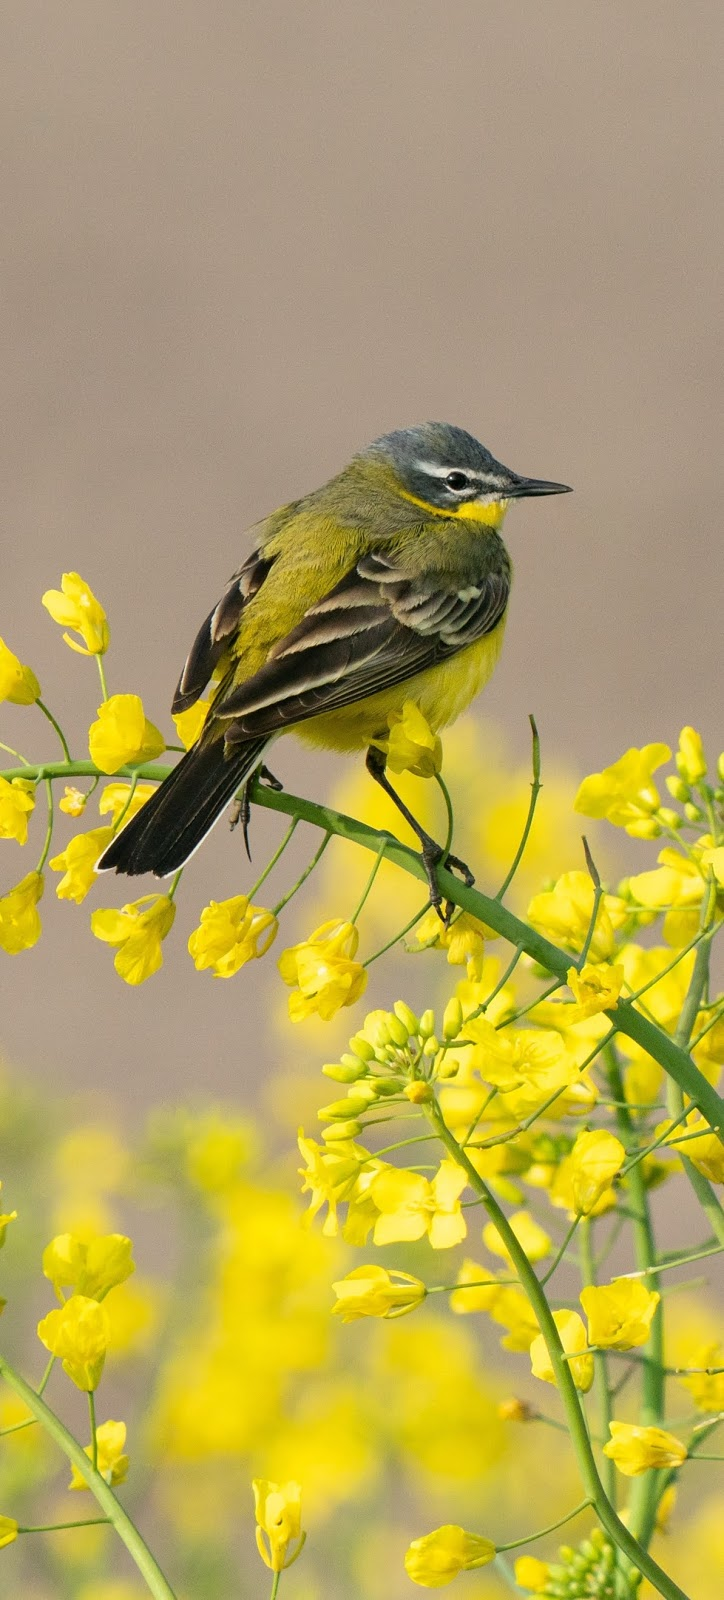 Western yellow wagtail.